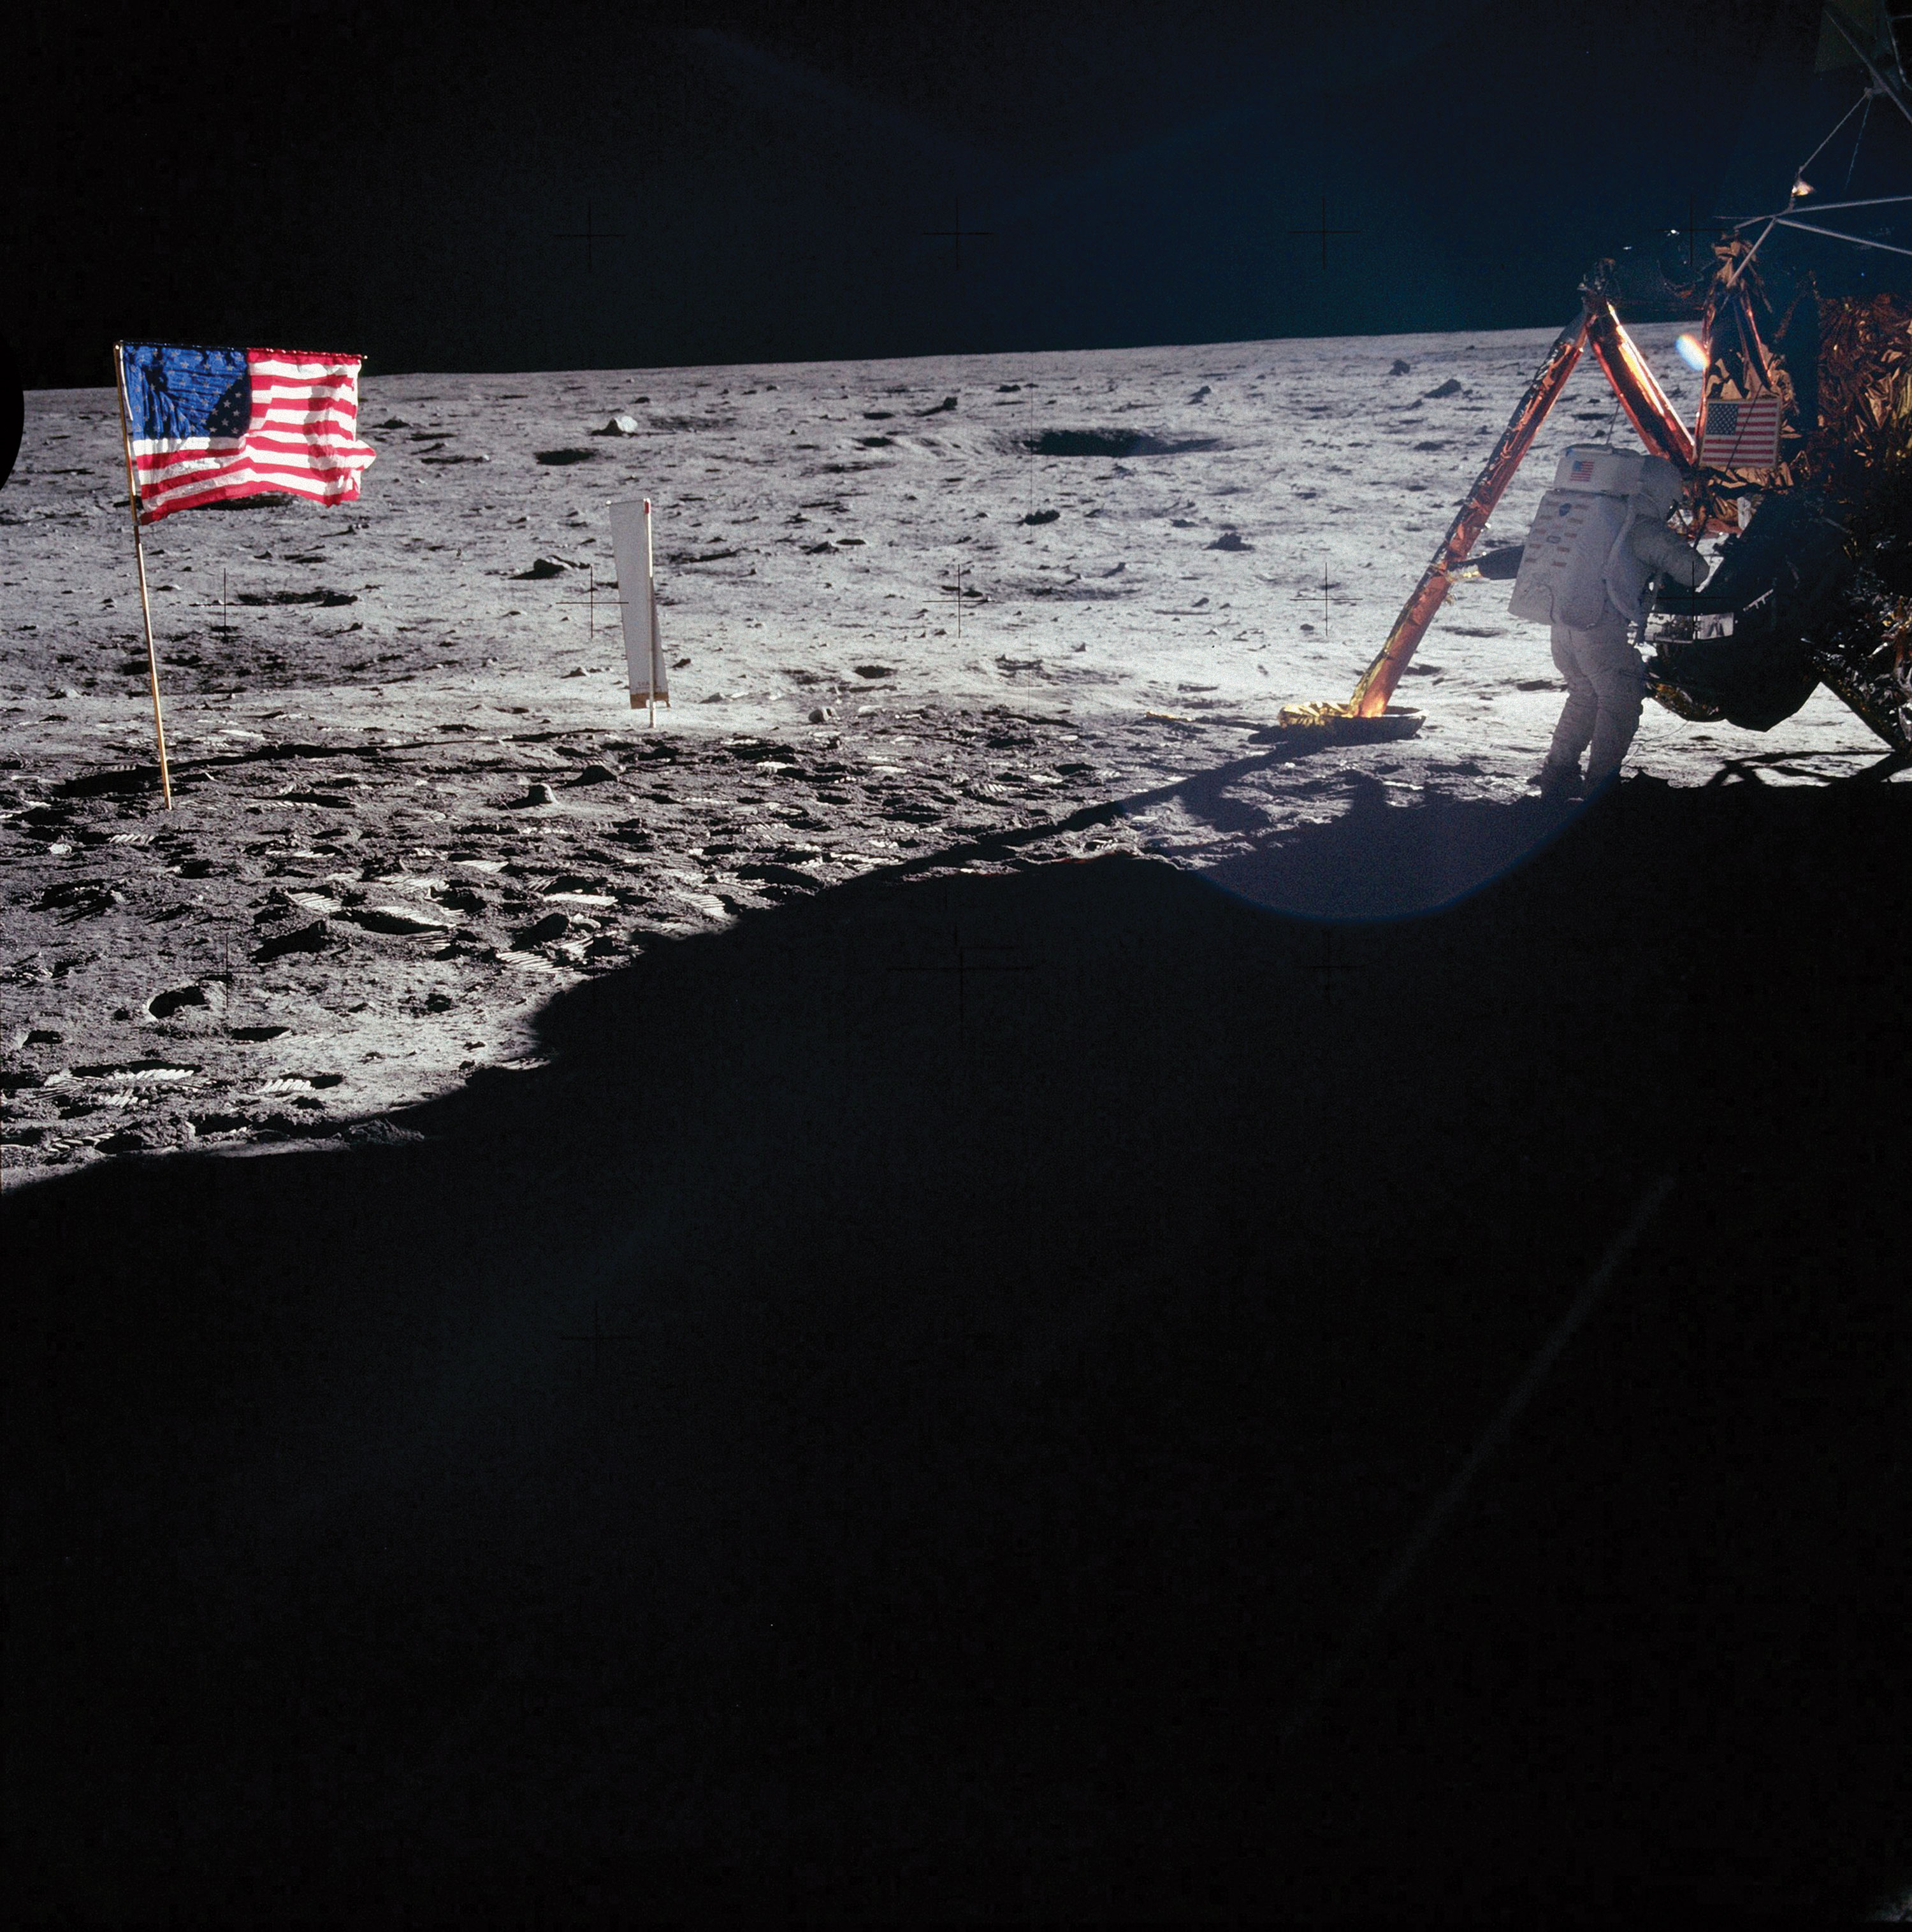 An image of an Apollo XI astronaut on the moon